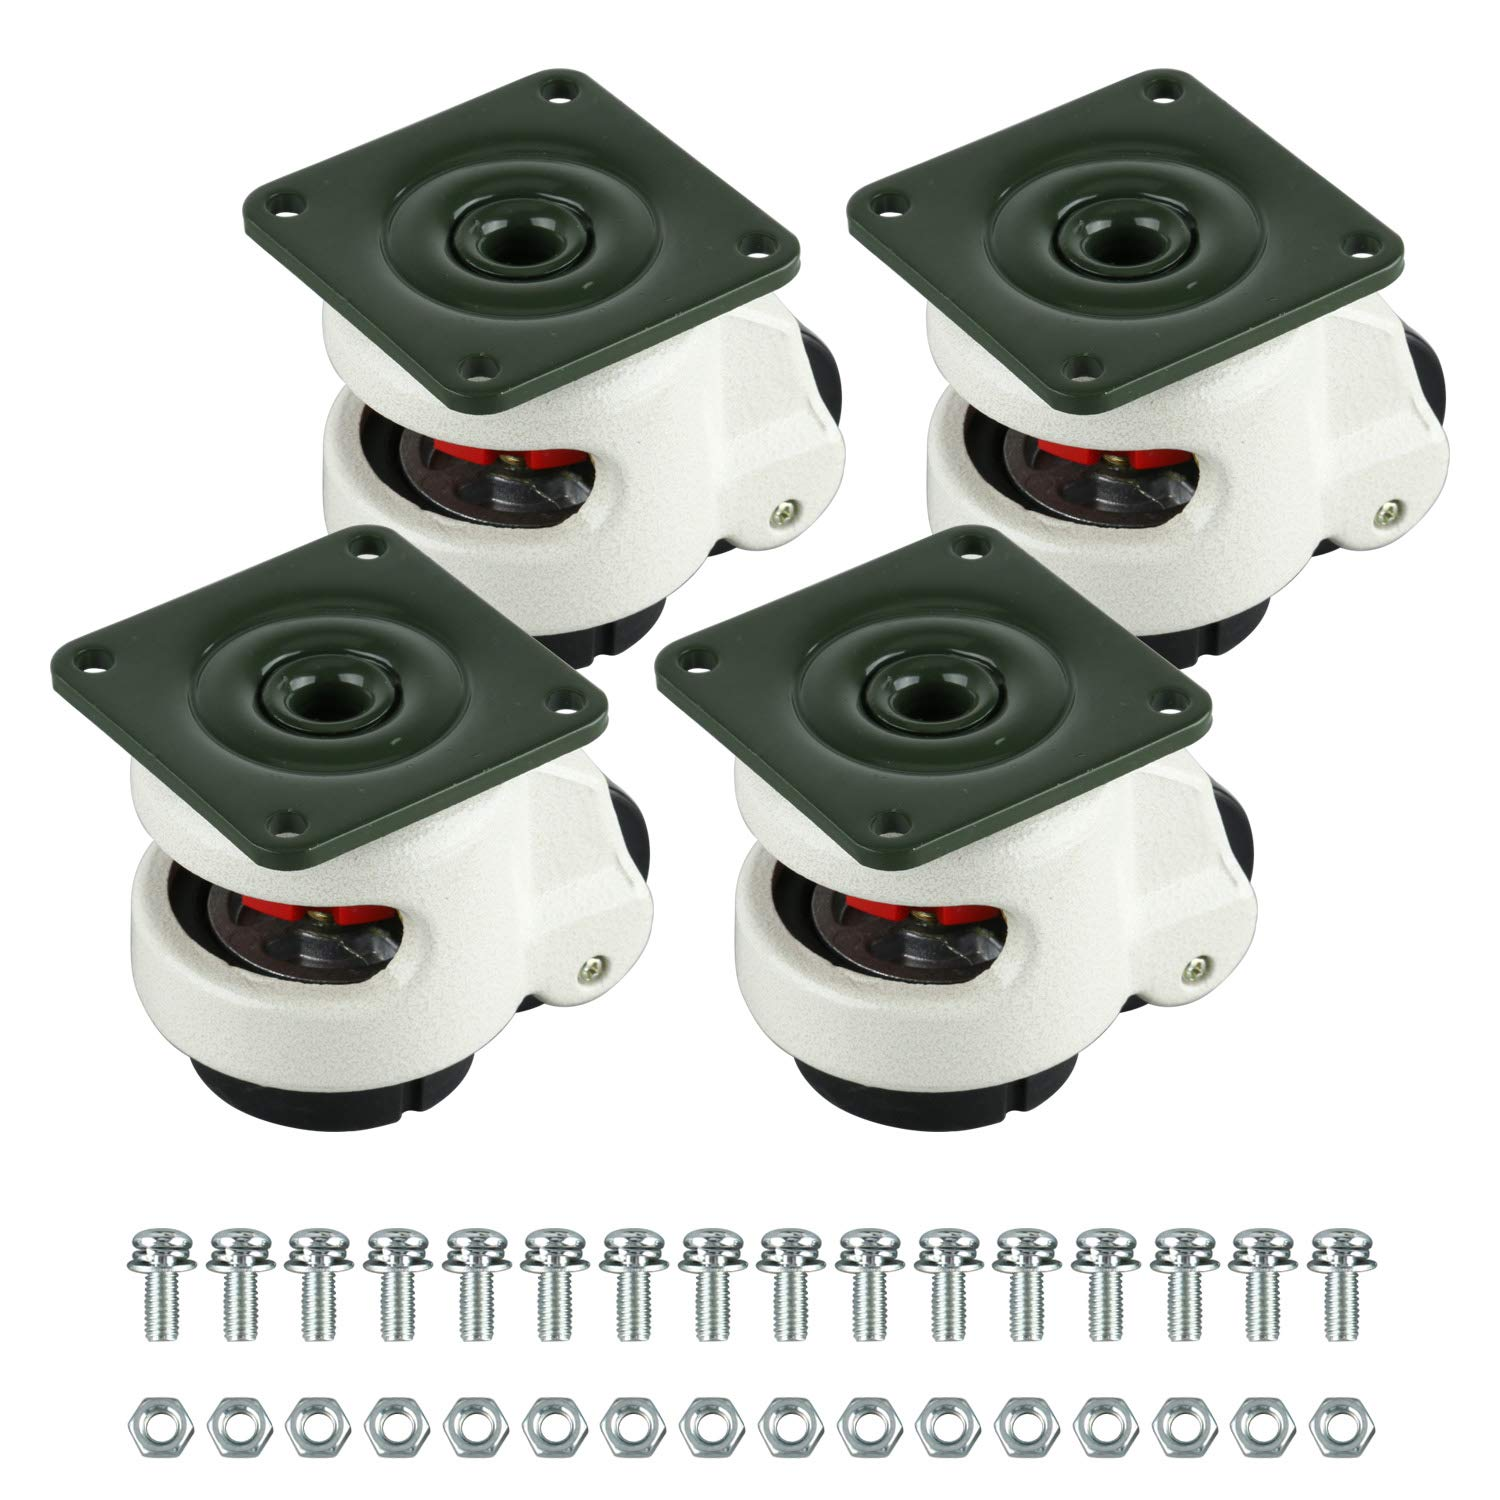 Homend 4 Pack Leveling Casters GD-60F Plate Mounted Leveling Caster 551lbs/Per Leveling Caster Wheels Nylon Wheel and NBR Pad(Plate Mounted 551lbs/Per) by Homend